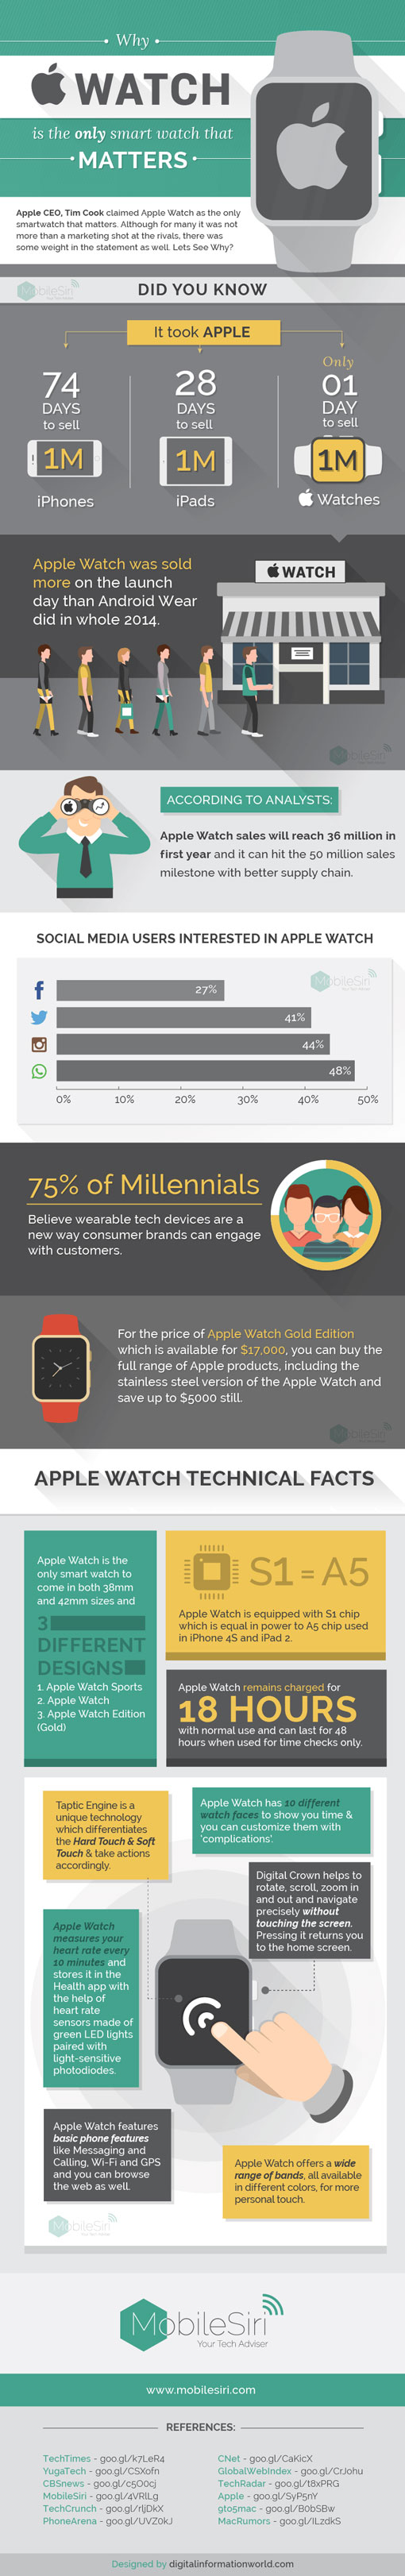 apple-watch-data